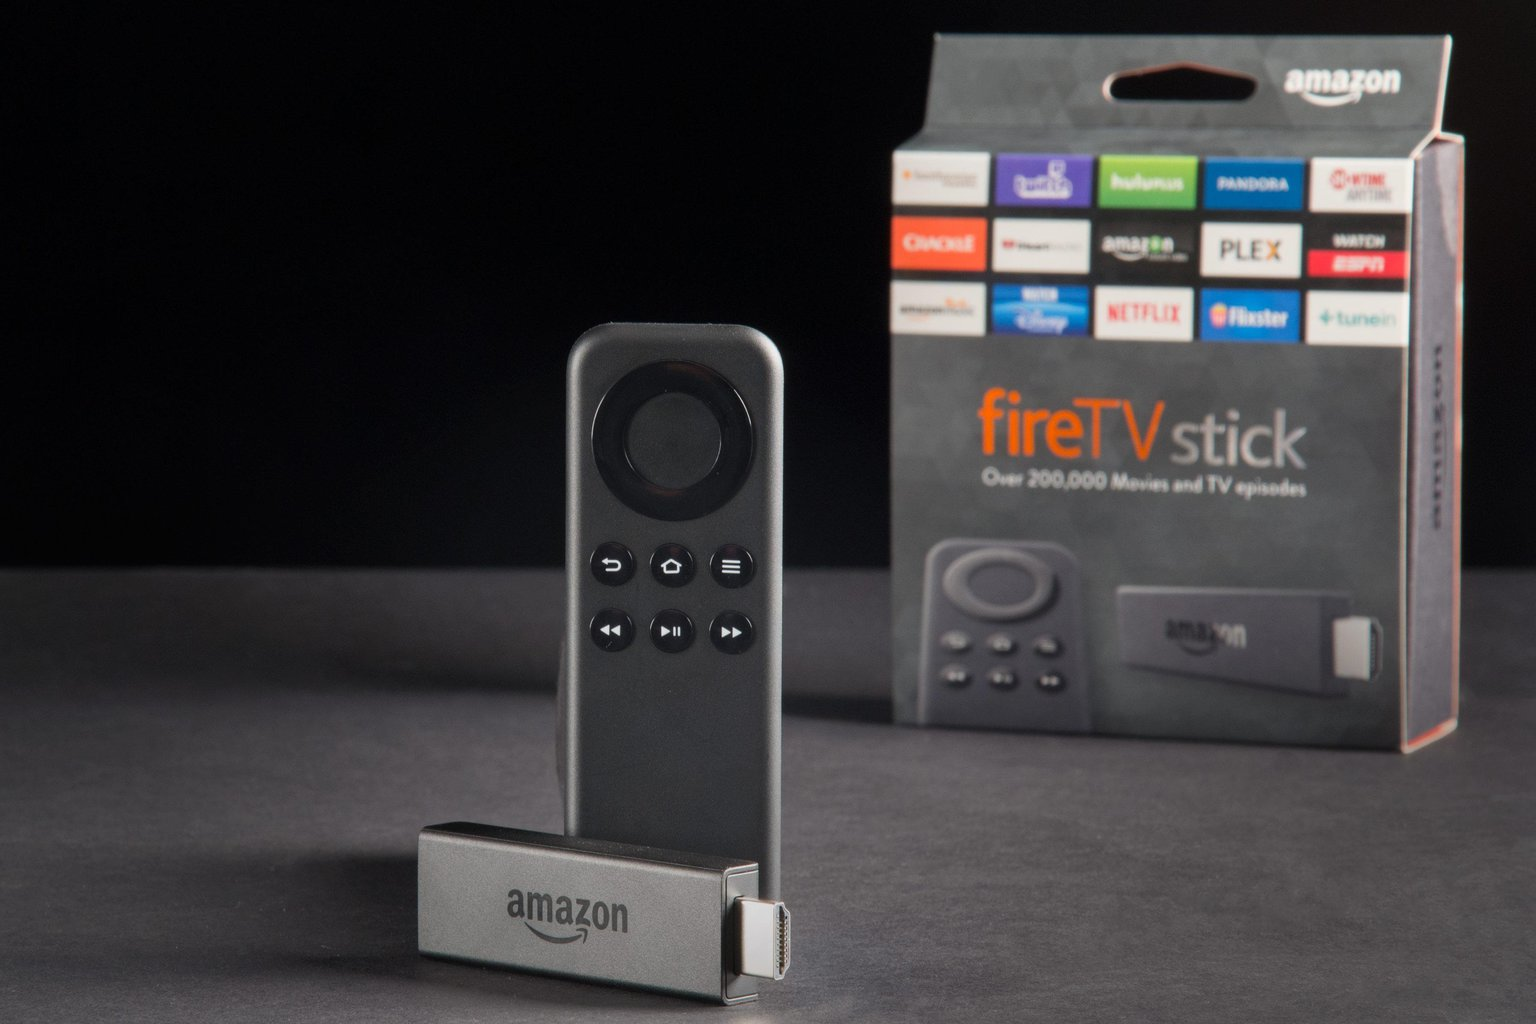 amazon-fire-tv-stick-boxbkgrnd